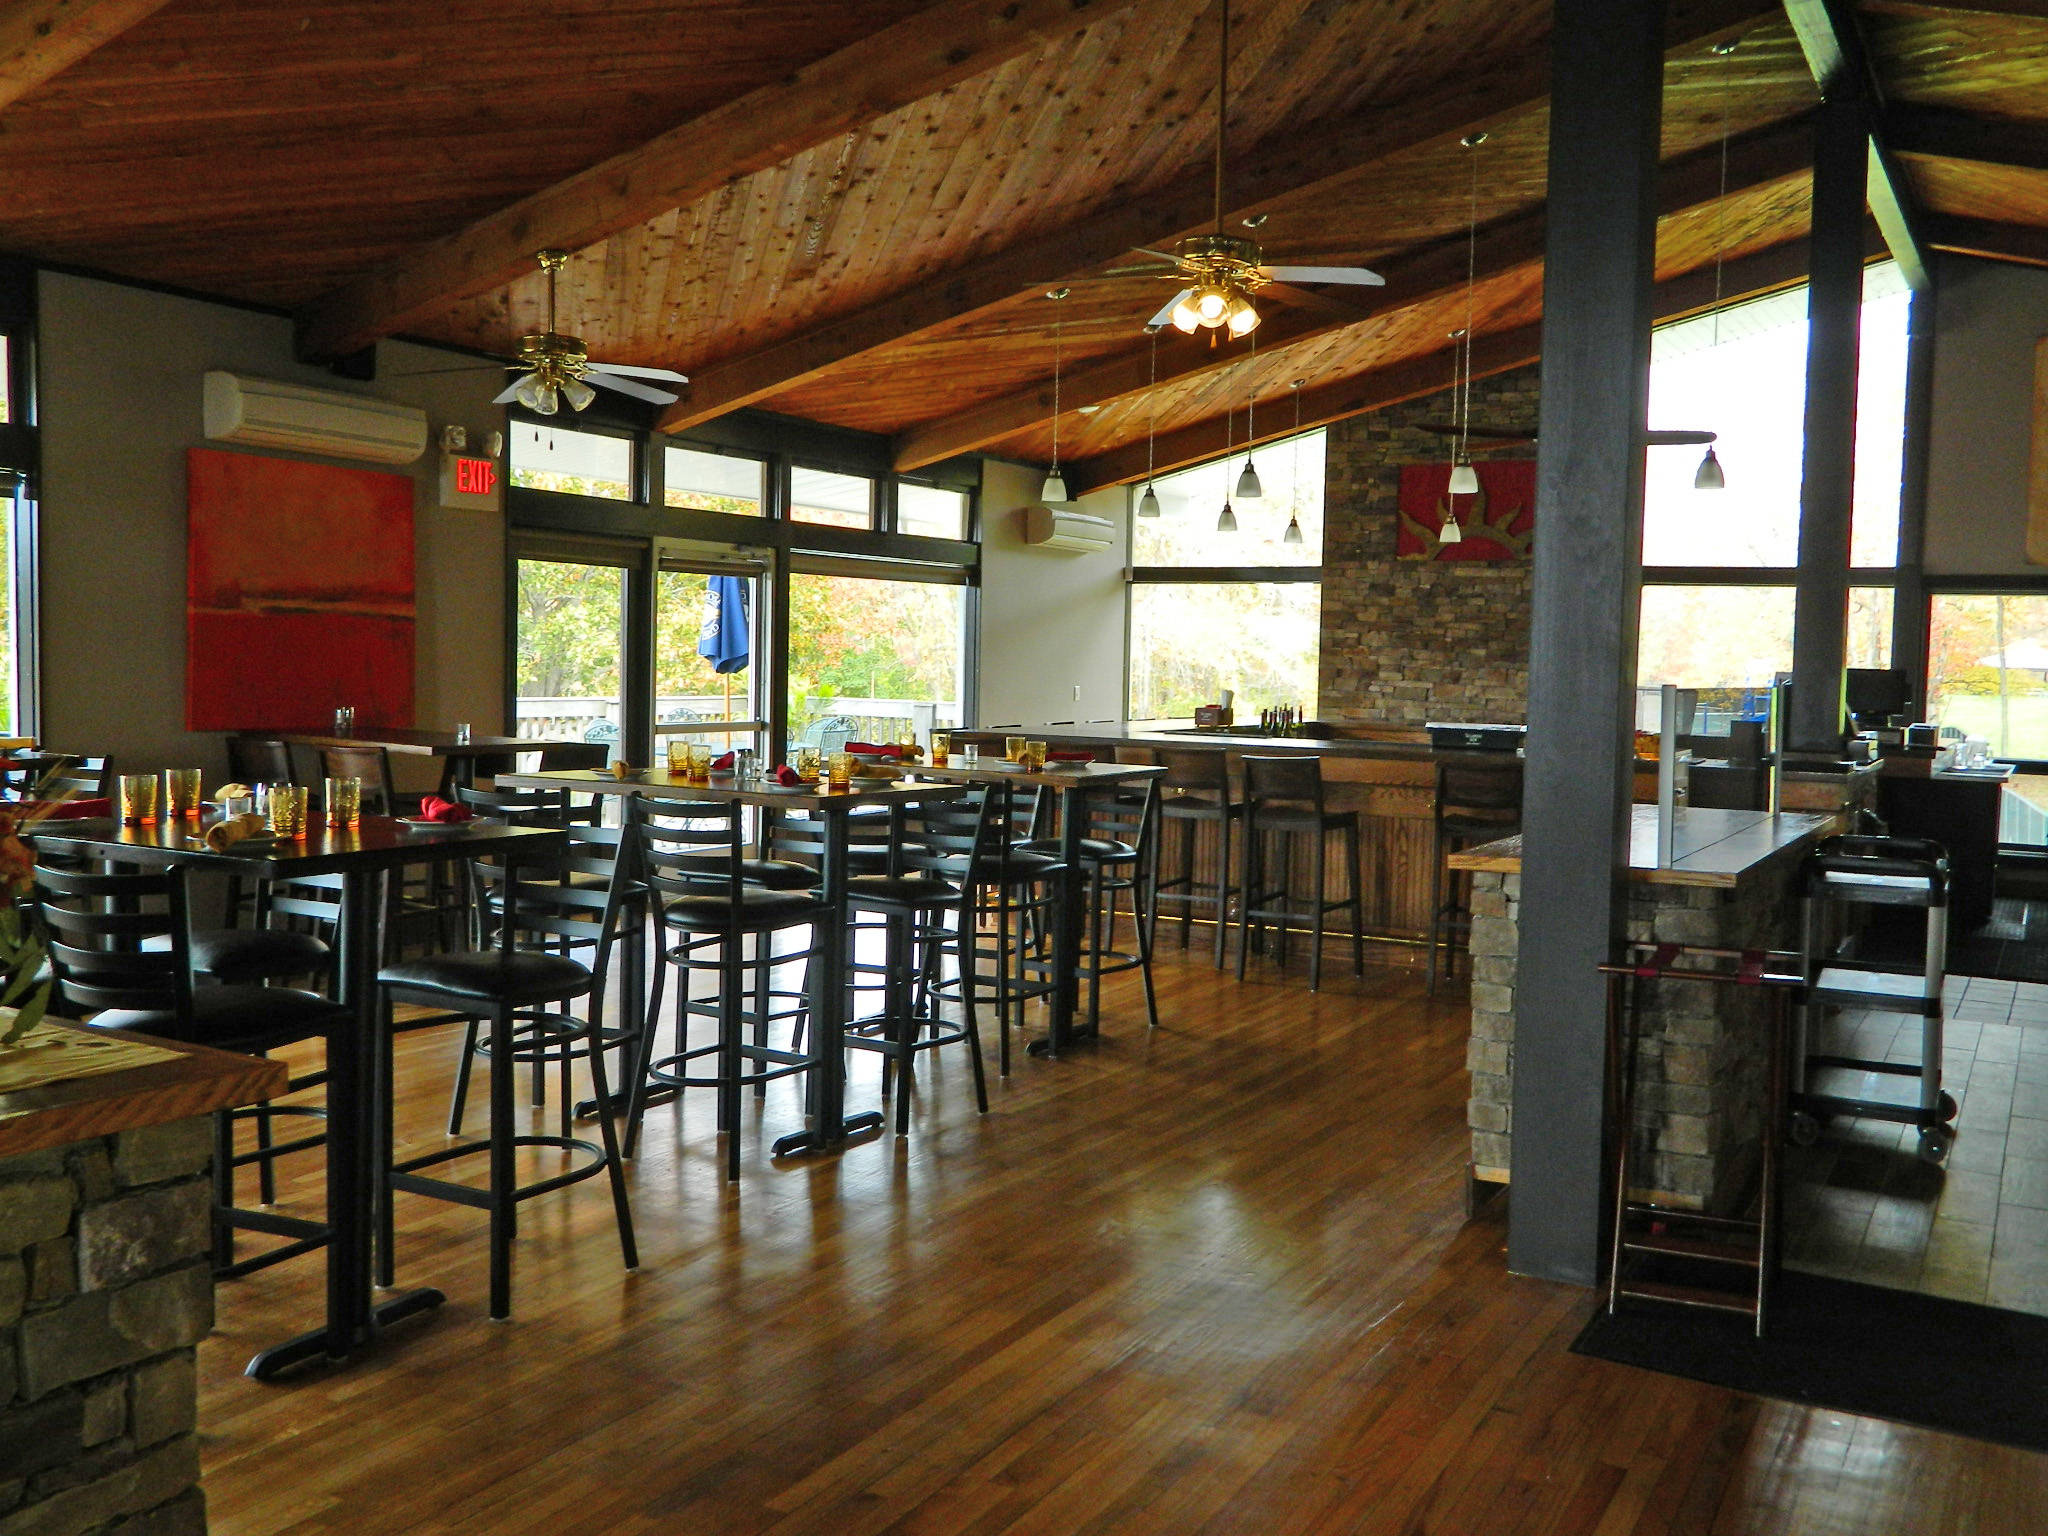 Sunset grill at crestbrook park watertown ct for The brook kitchen and tap